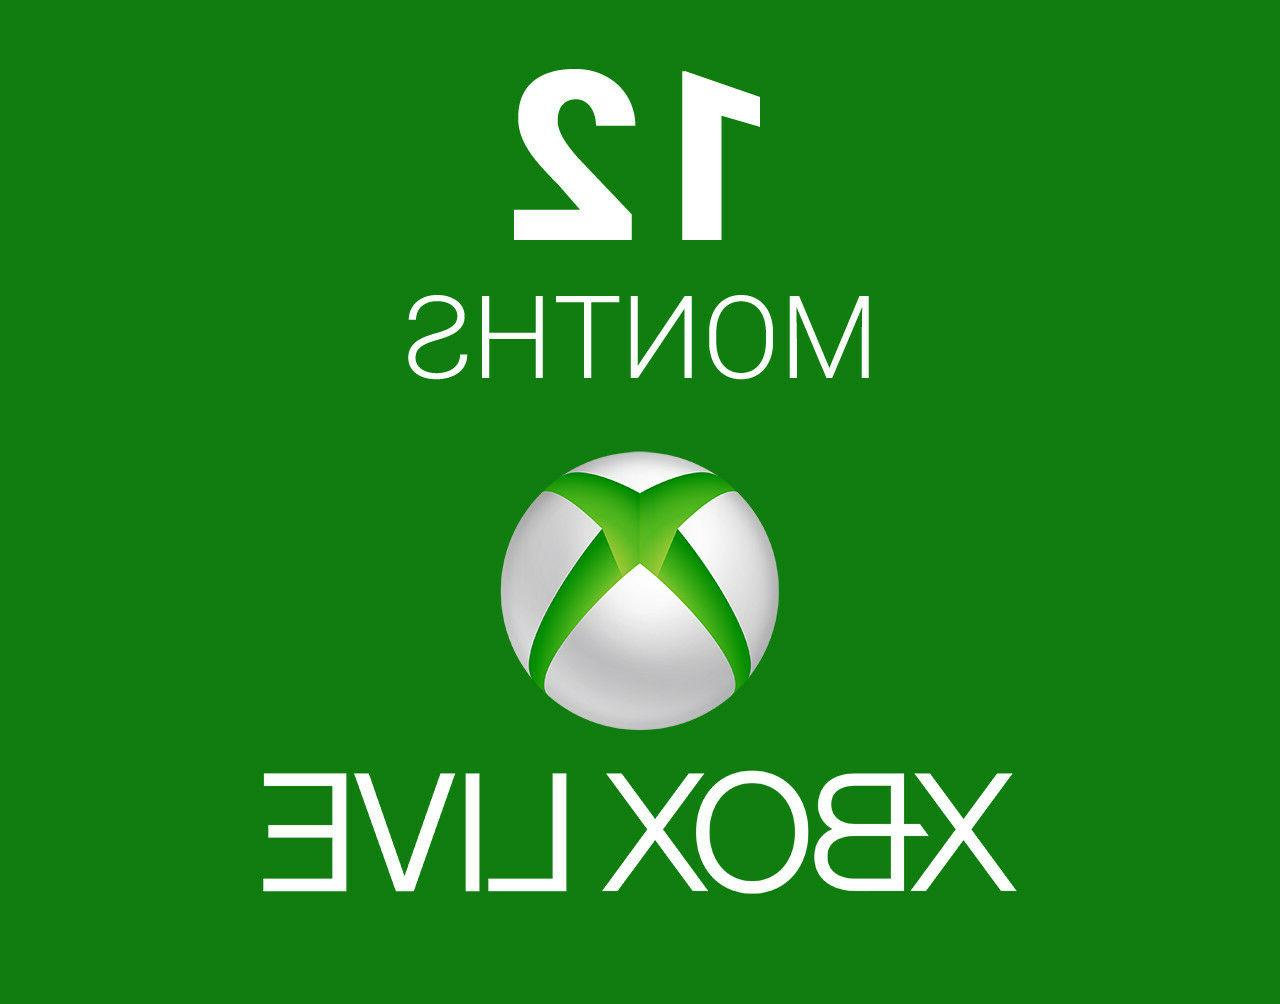 xbox one 360 12 month live gold